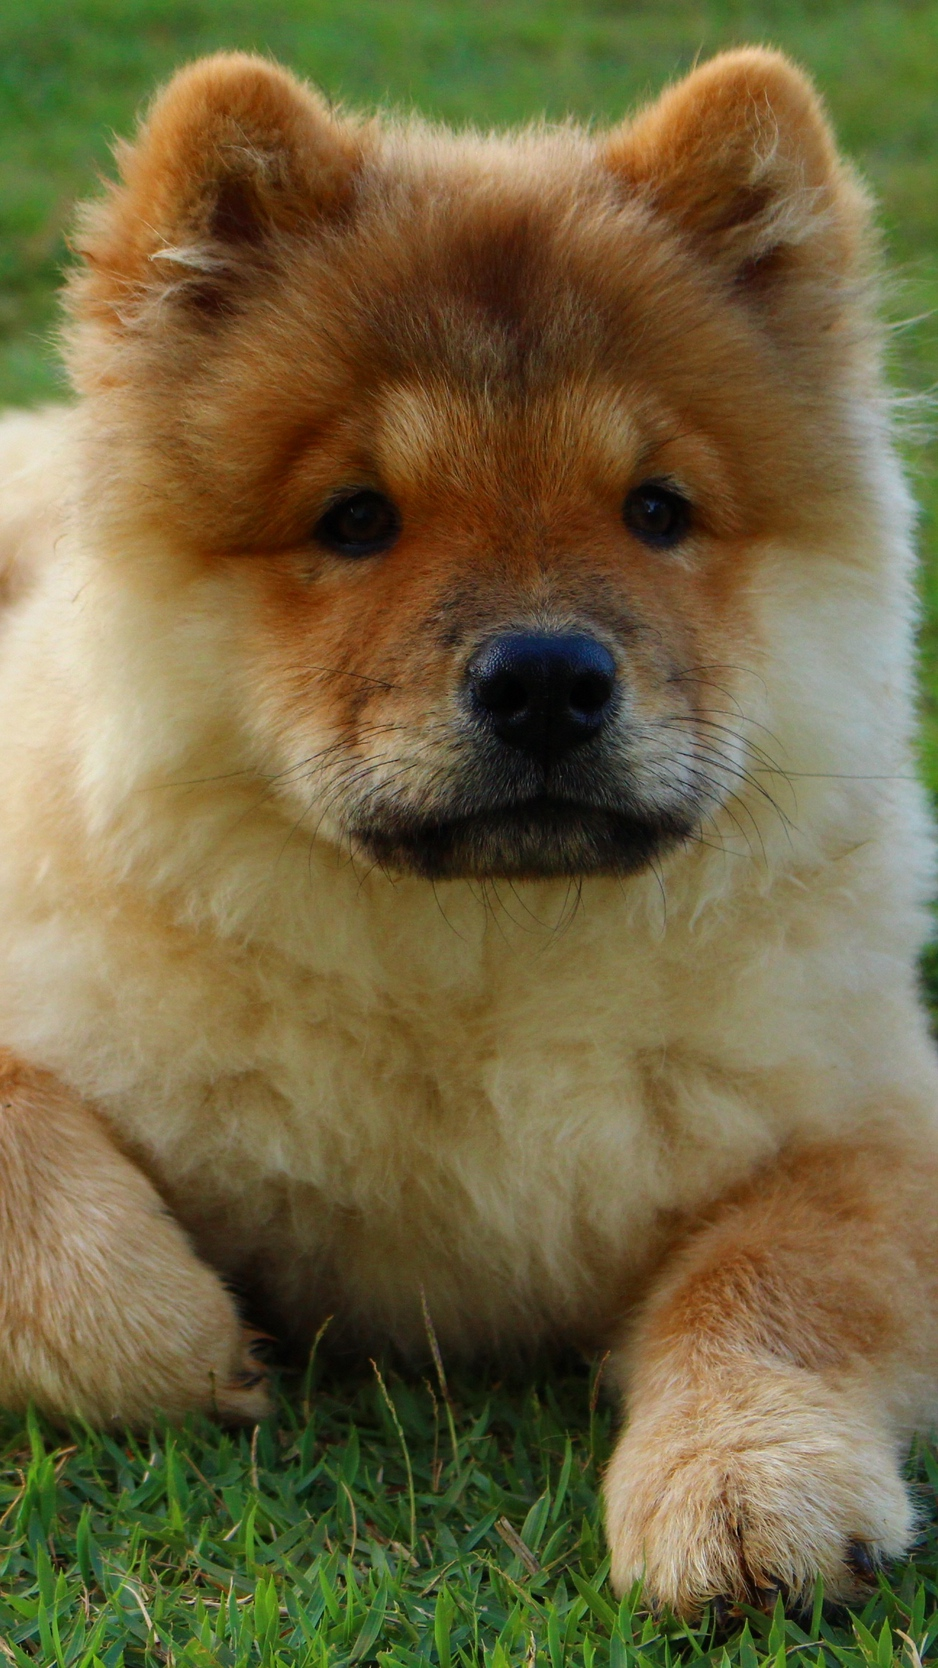 Download wallpapers 938x1668 chow chow, dog, puppy, lying iphone 8/7